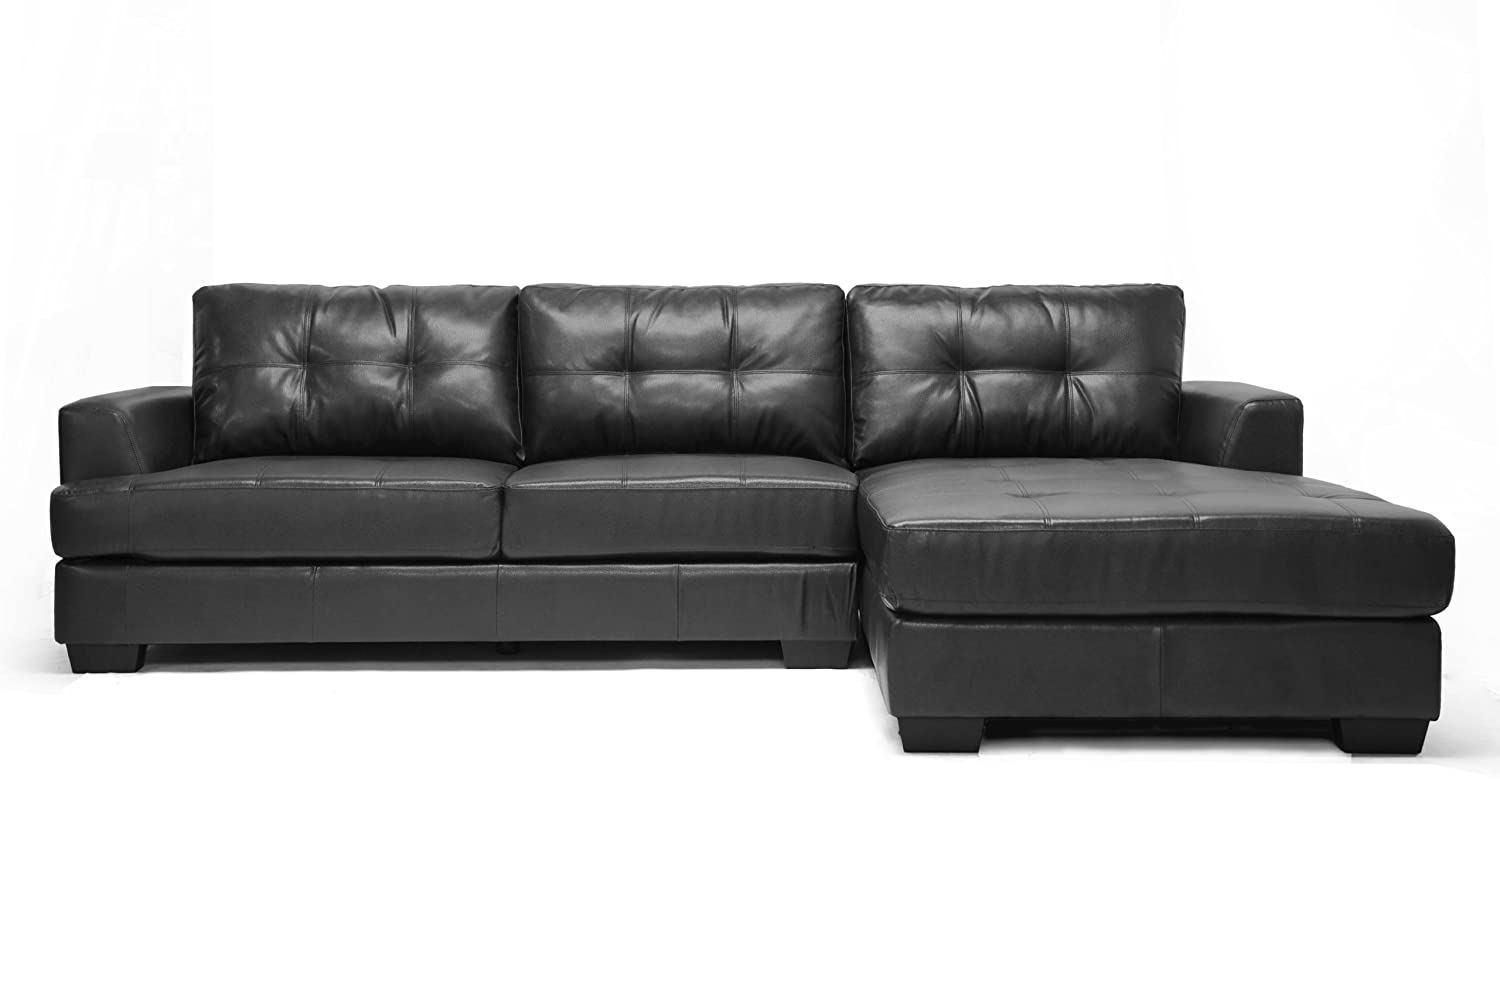 Amazon.com: Baxton Studio Dobson Leather Modern Sectional Sofa, Black:  Kitchen U0026 Dining